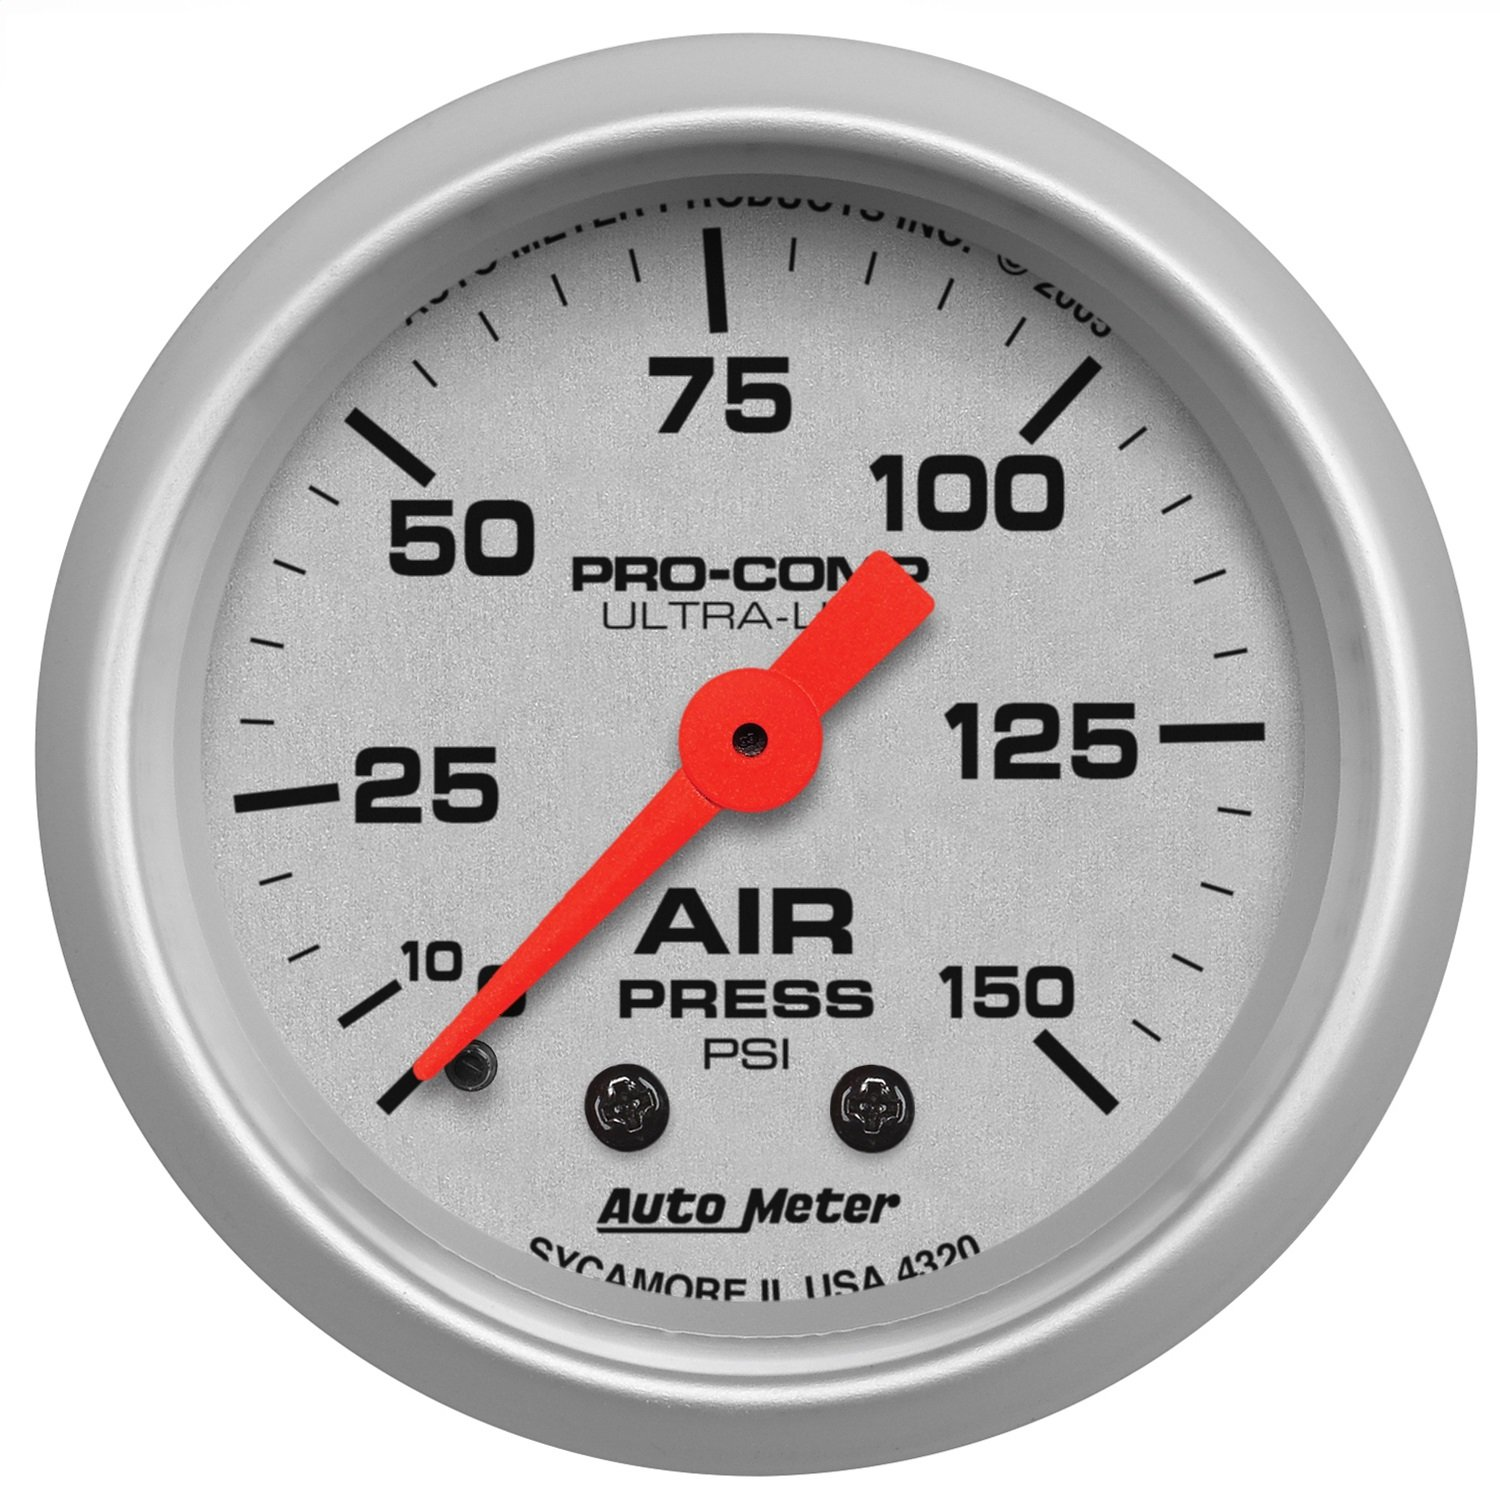 Auto Meter 4320 Ultra-Lite Mechanical Air Pressure Gauge